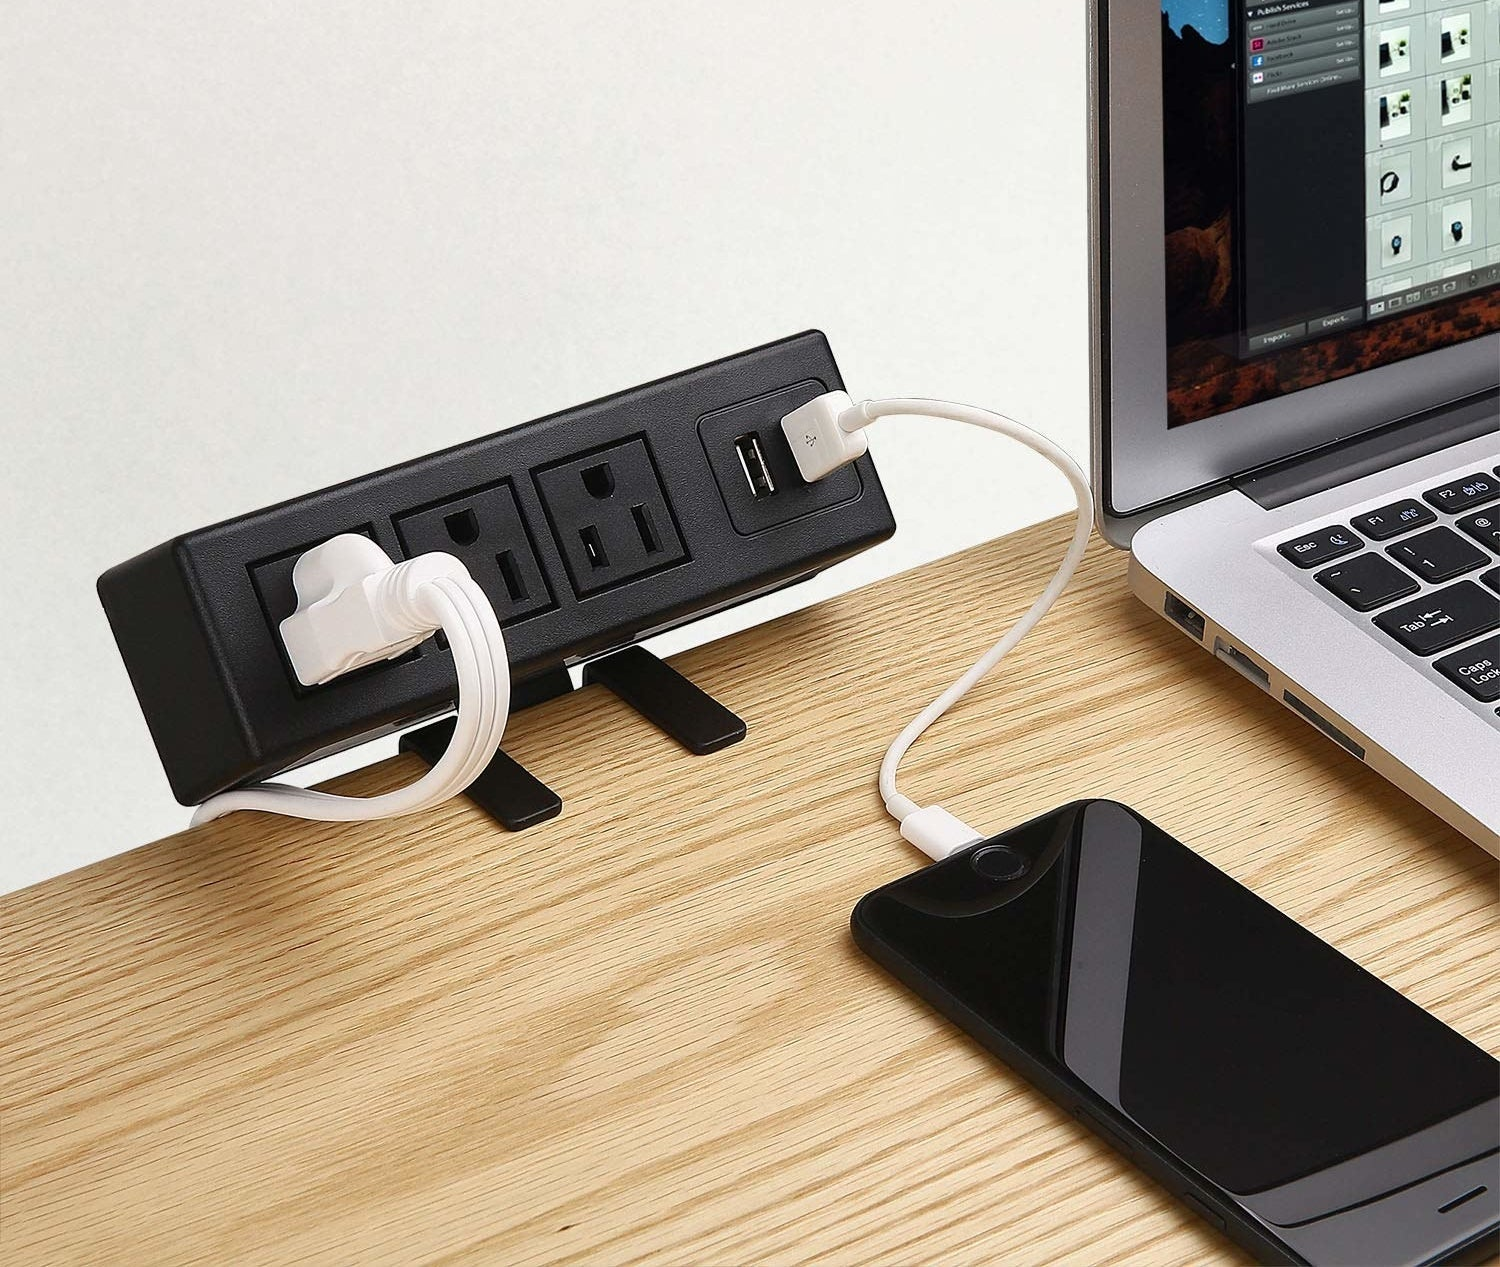 A small power bar clamped to the side of a desk with a cable and phone charger plugged in